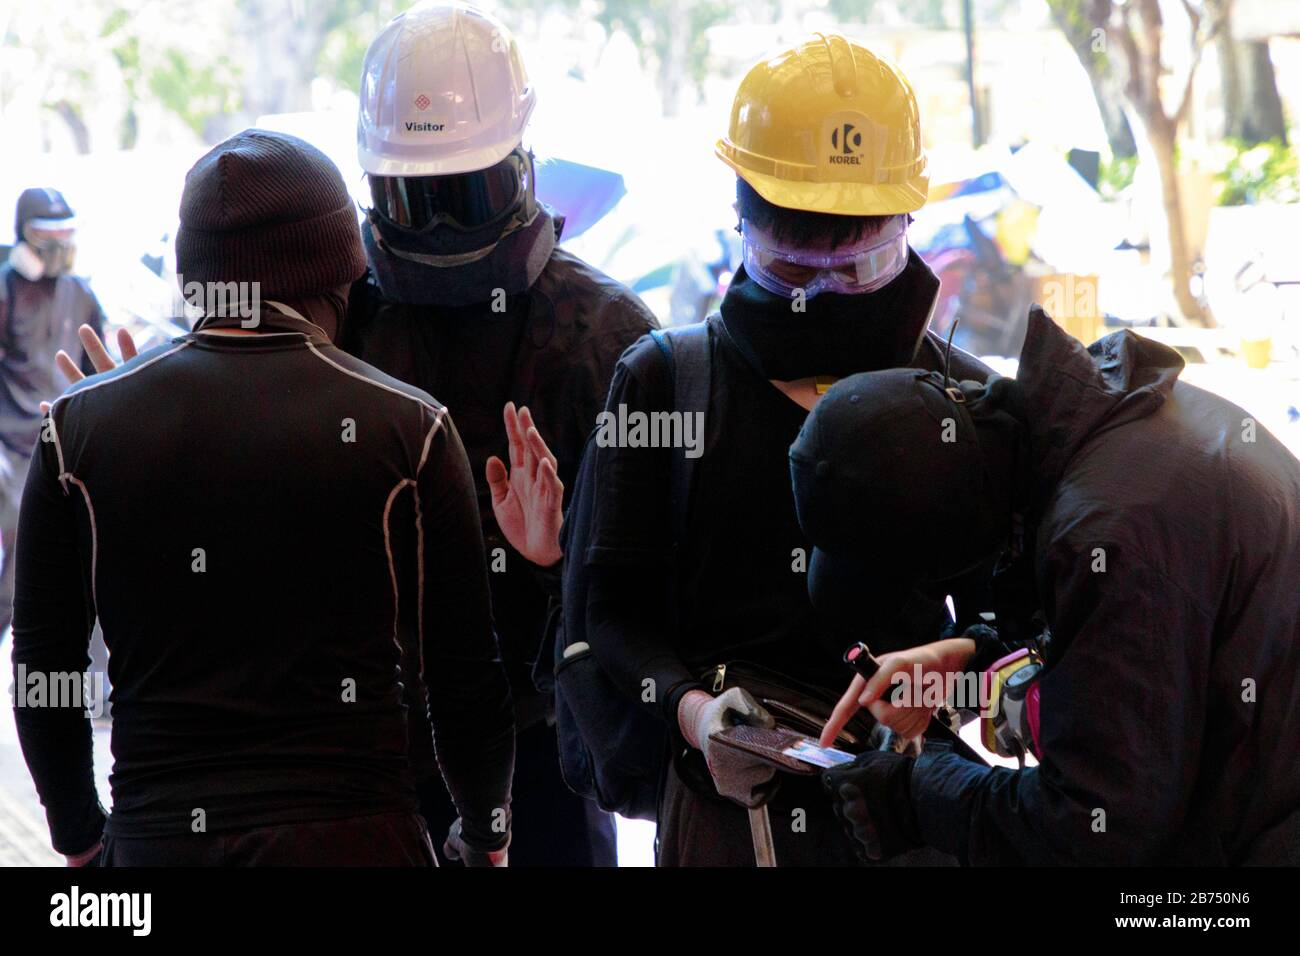 Anti-government protests in Hong Kong, 2019 Stock Photo